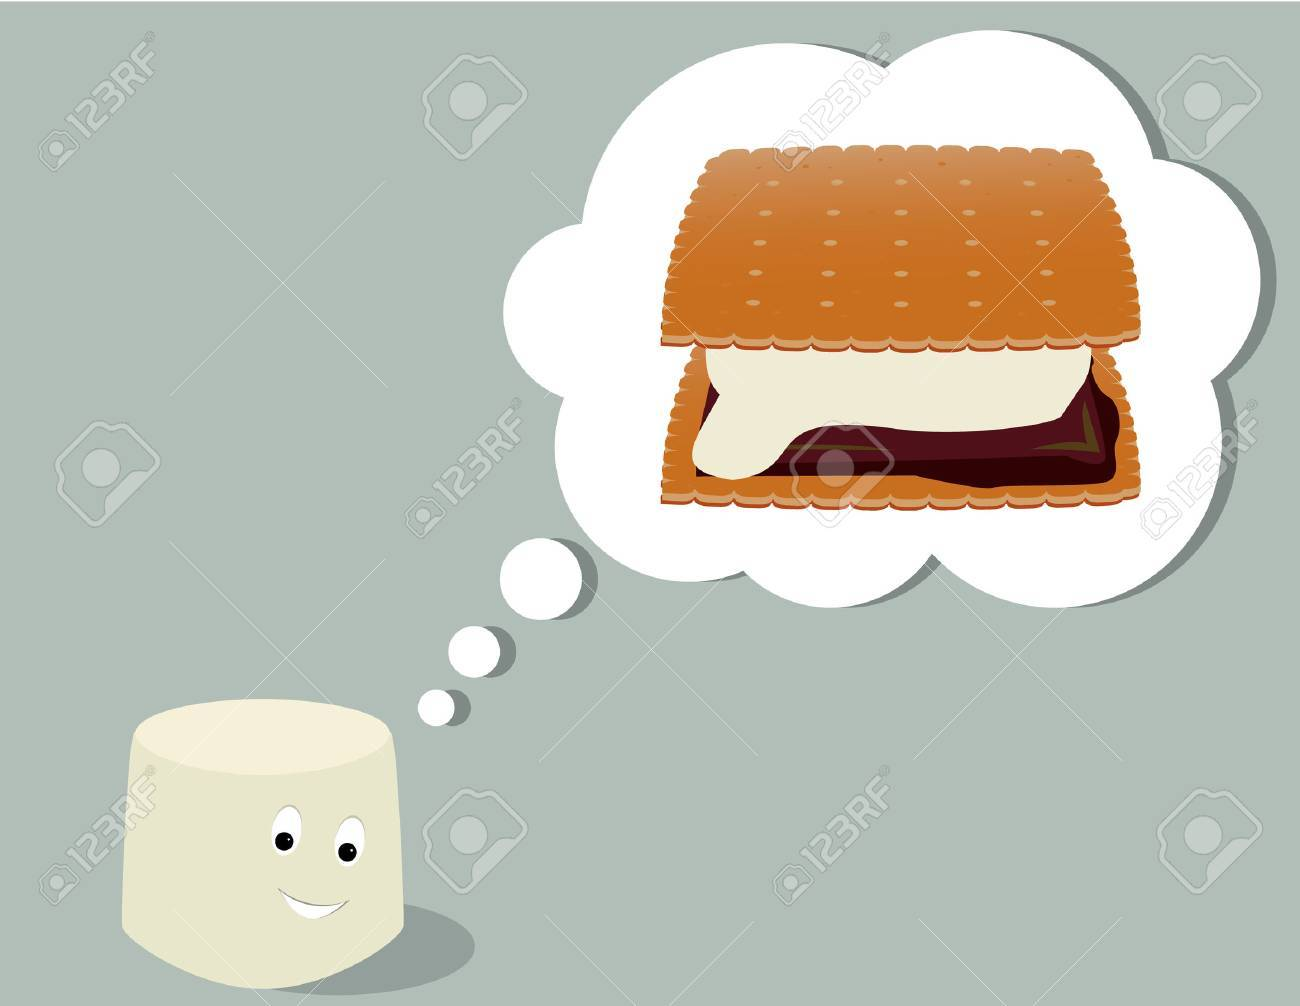 Smiling marshmallow thinking of a smore all on a gray background Stock Vector - 6468307